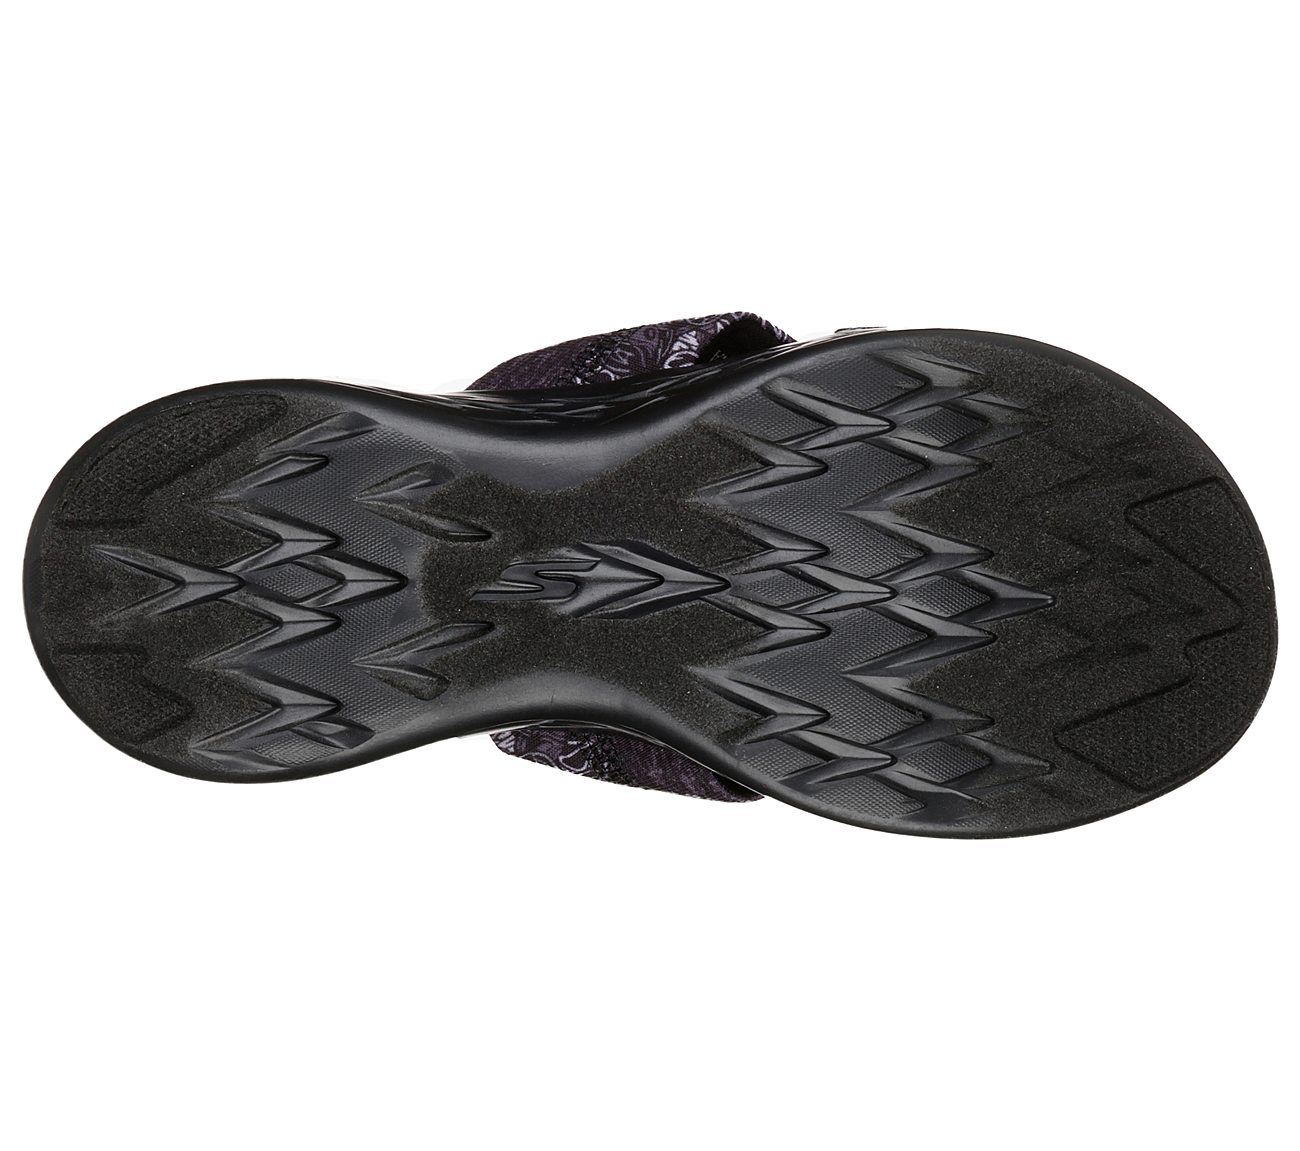 be8078104511 Buy SKECHERS Skechers On the GO 600 - Monarch Skechers Performance ...